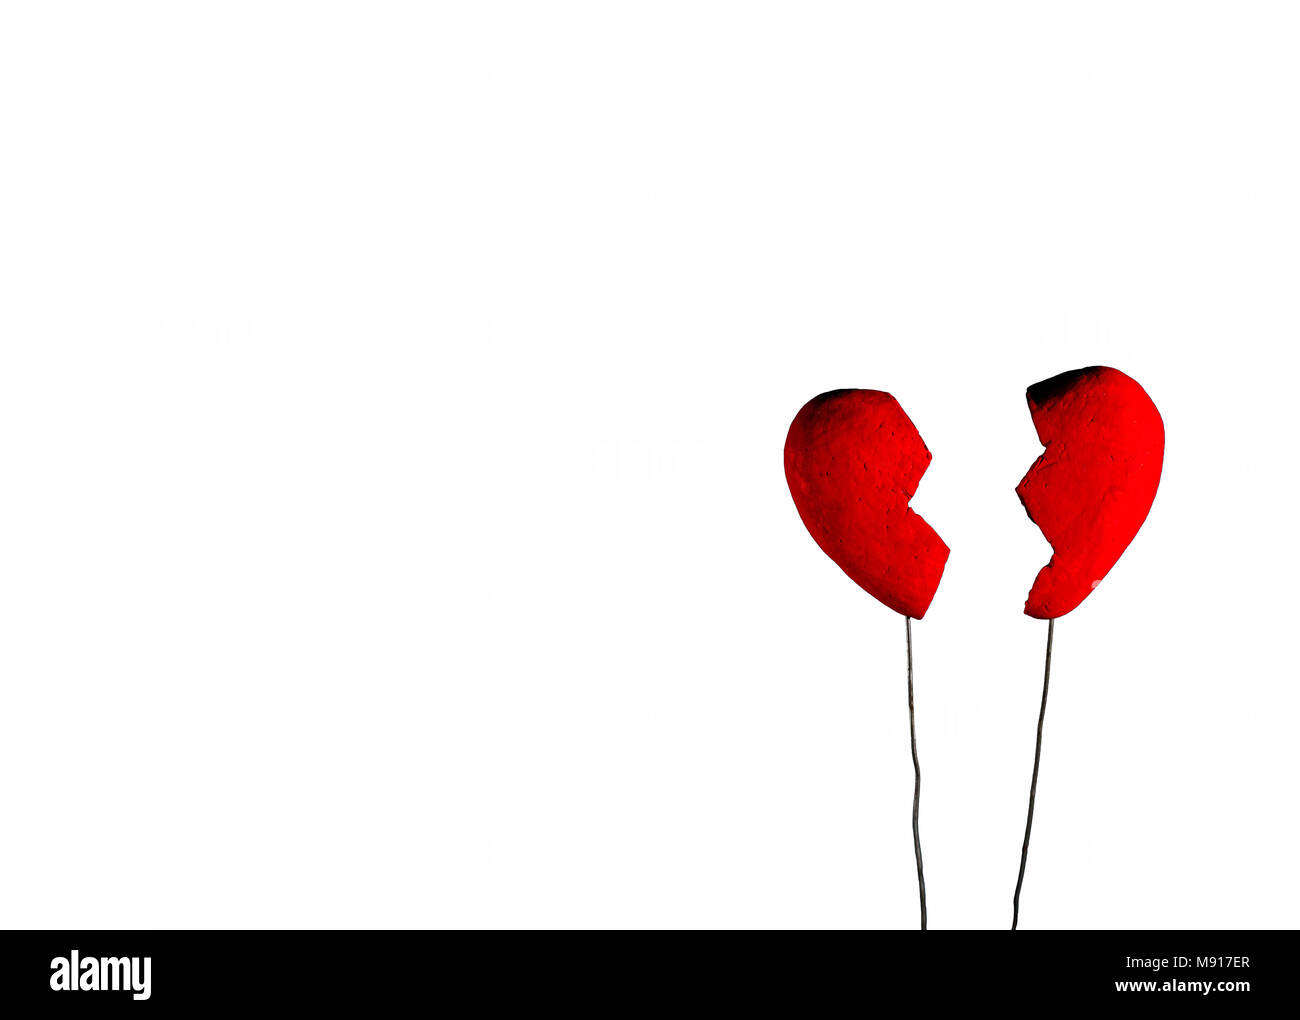 Conceptual Of Broken Heart On The White Background Stock Photo Alamy